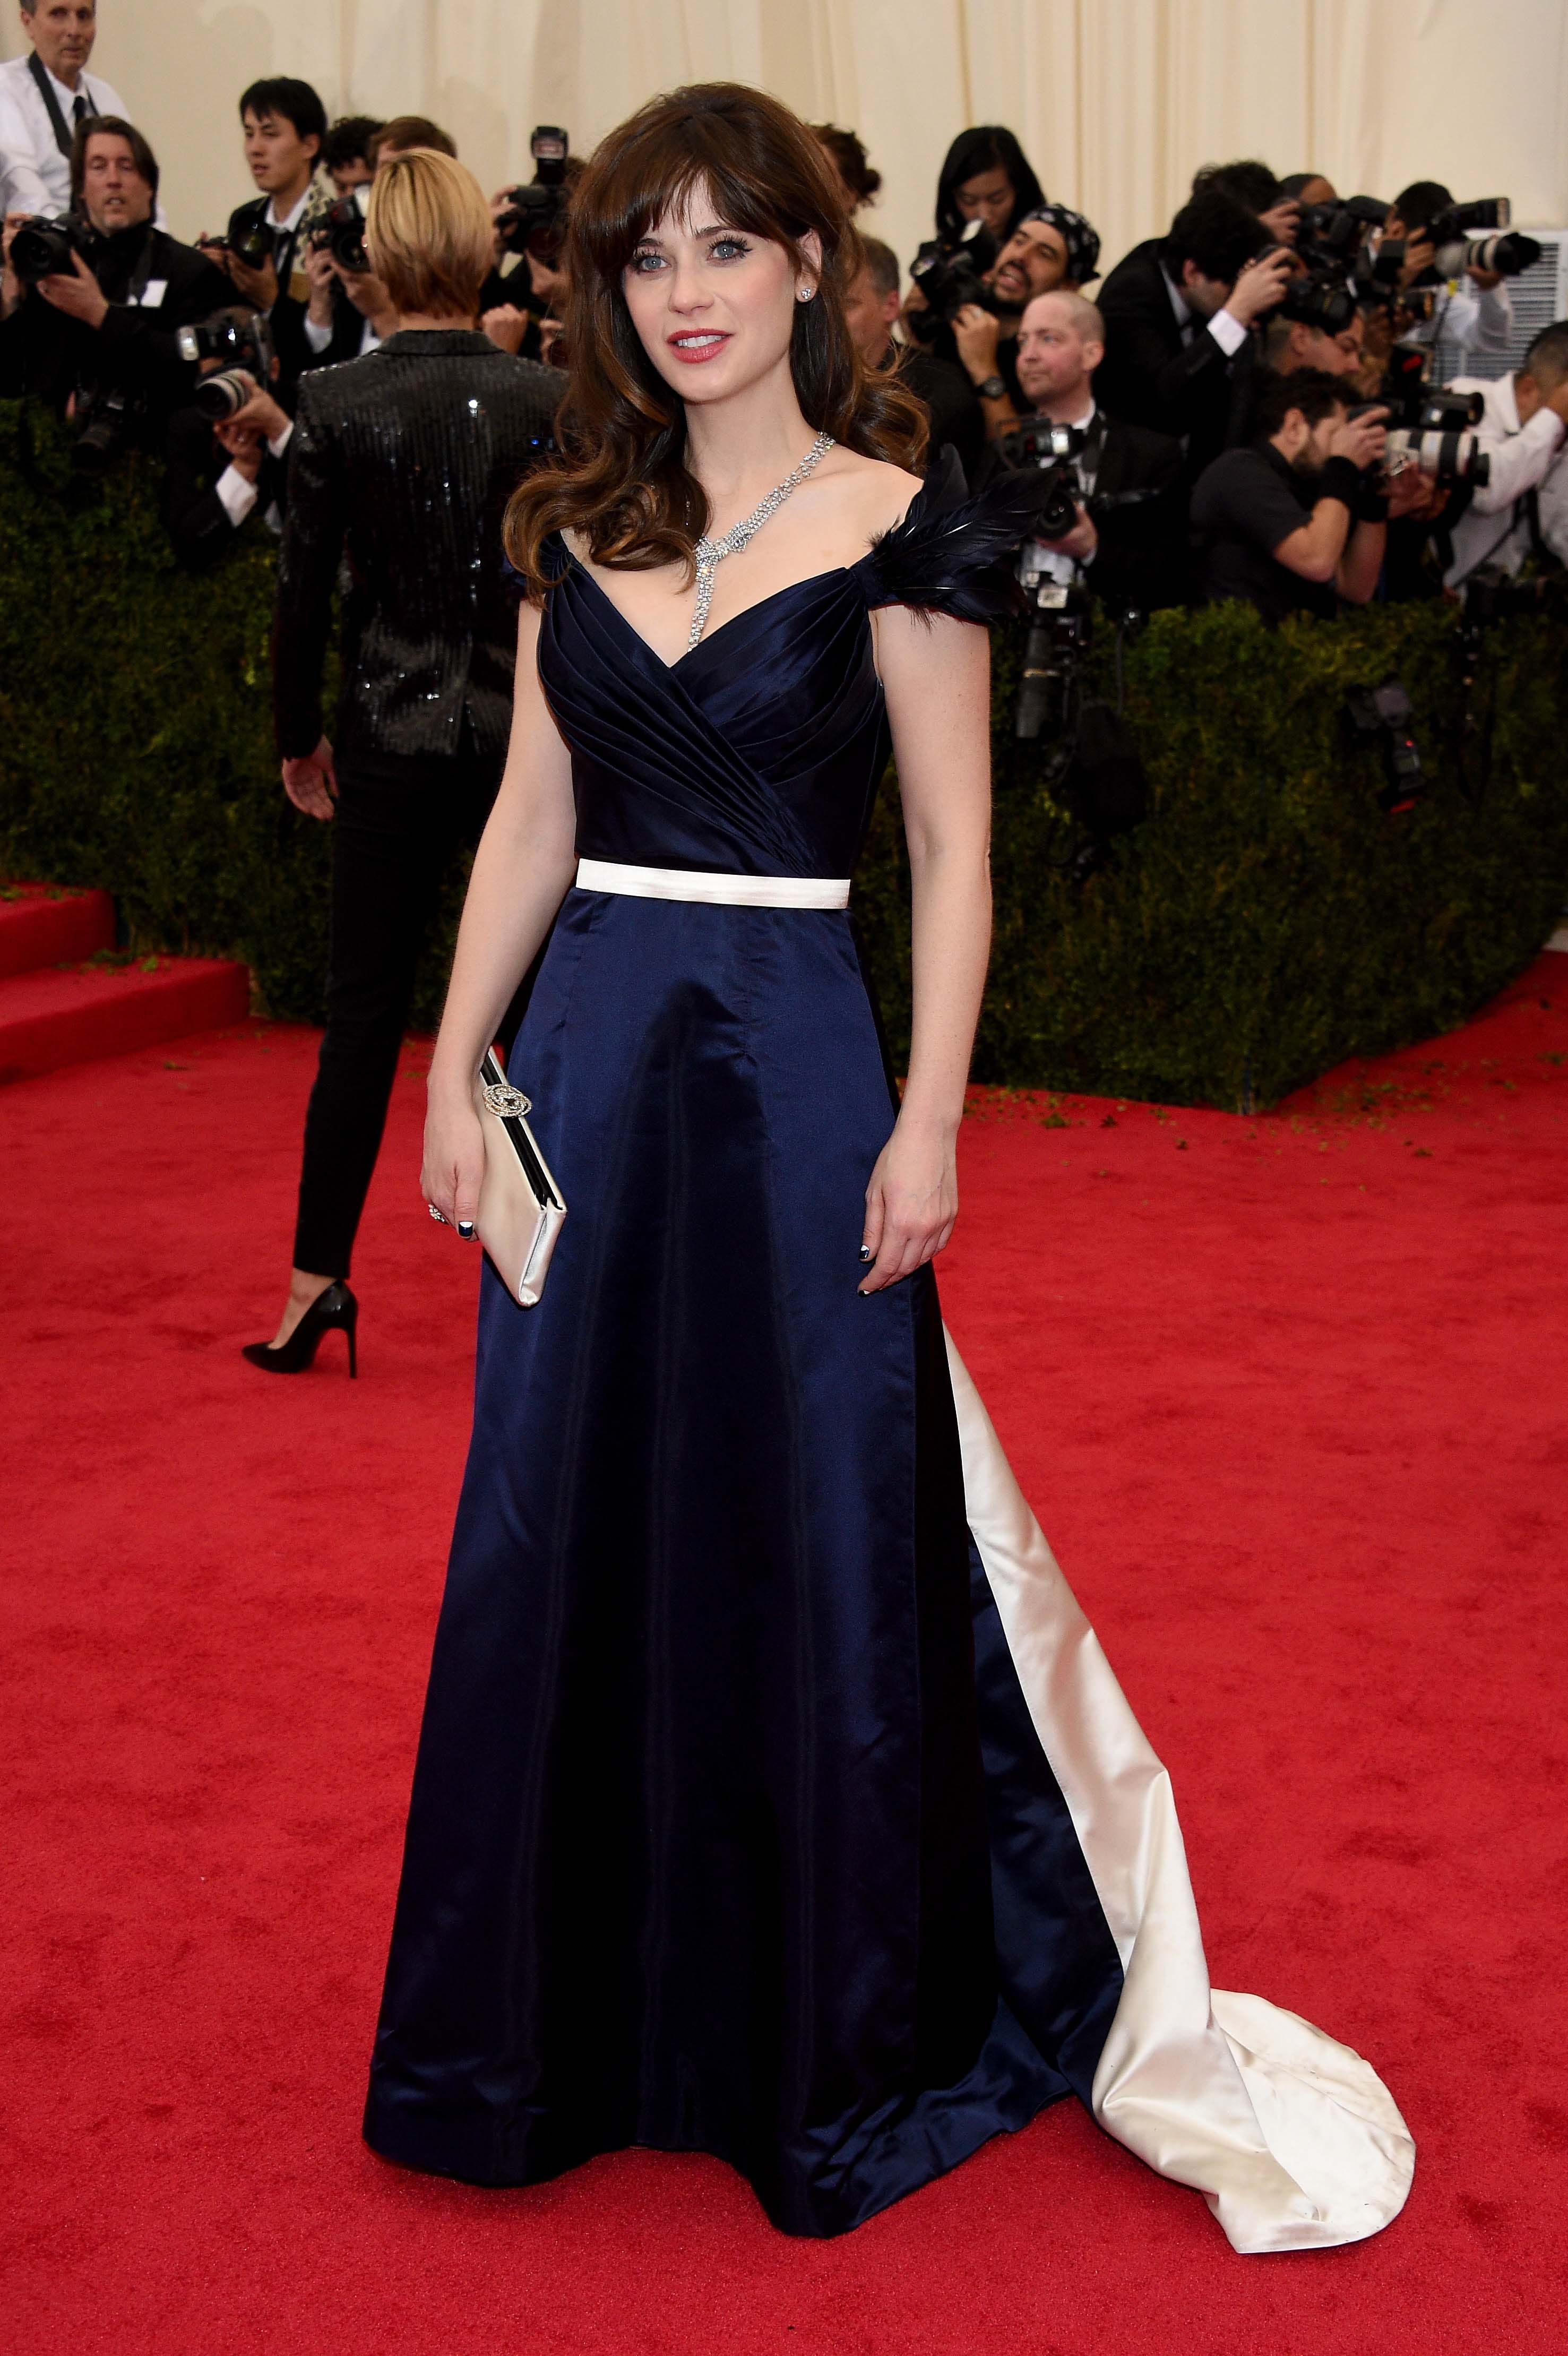 Zooey Deschanel wearing a midnight navy duchess satin gown by Tommy Hilfiger at the Met Gala 2014